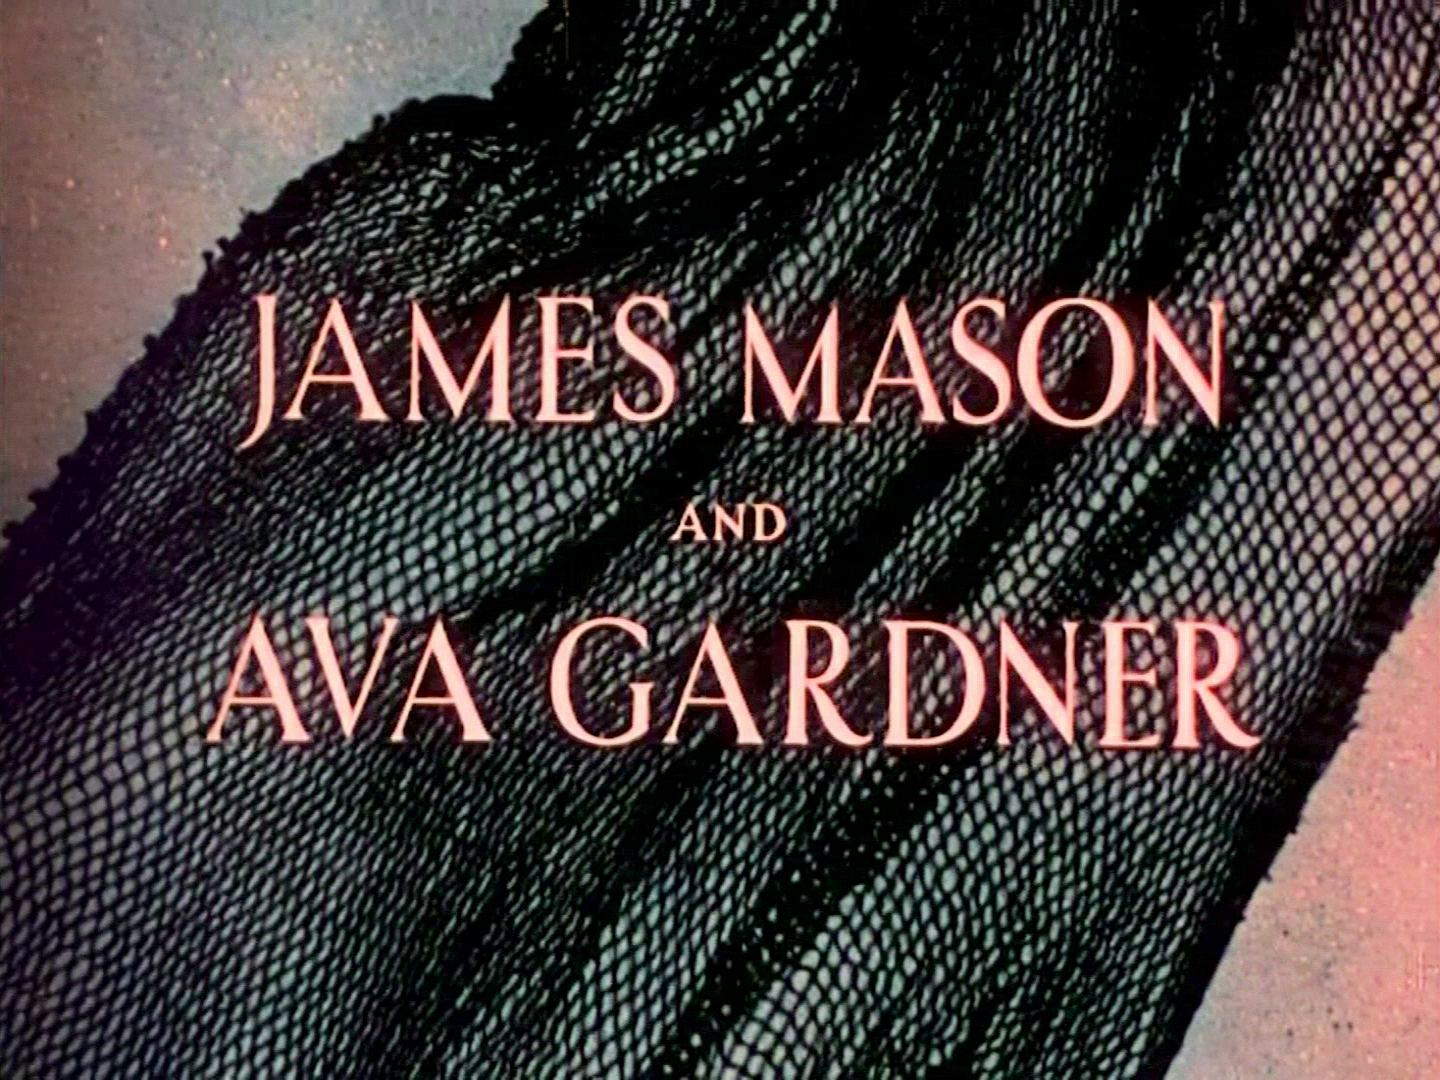 Main title from Pandora and the Flying Dutchman (1951) (1). James Mason and Ava Gardner